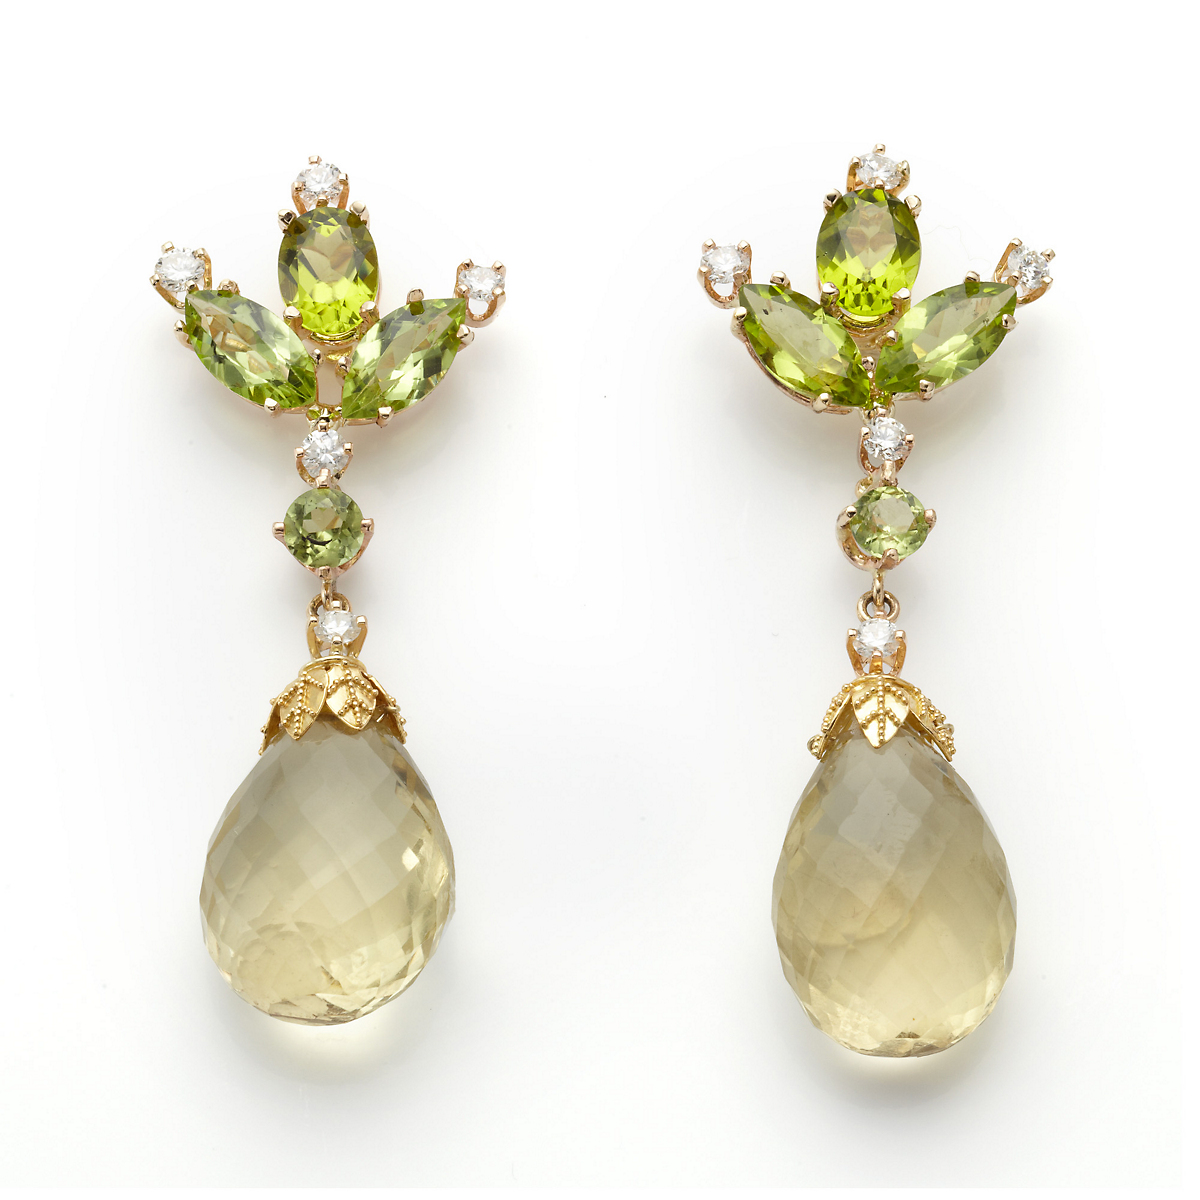 Russell Trusso Lemon Quartz Peridot Earrings